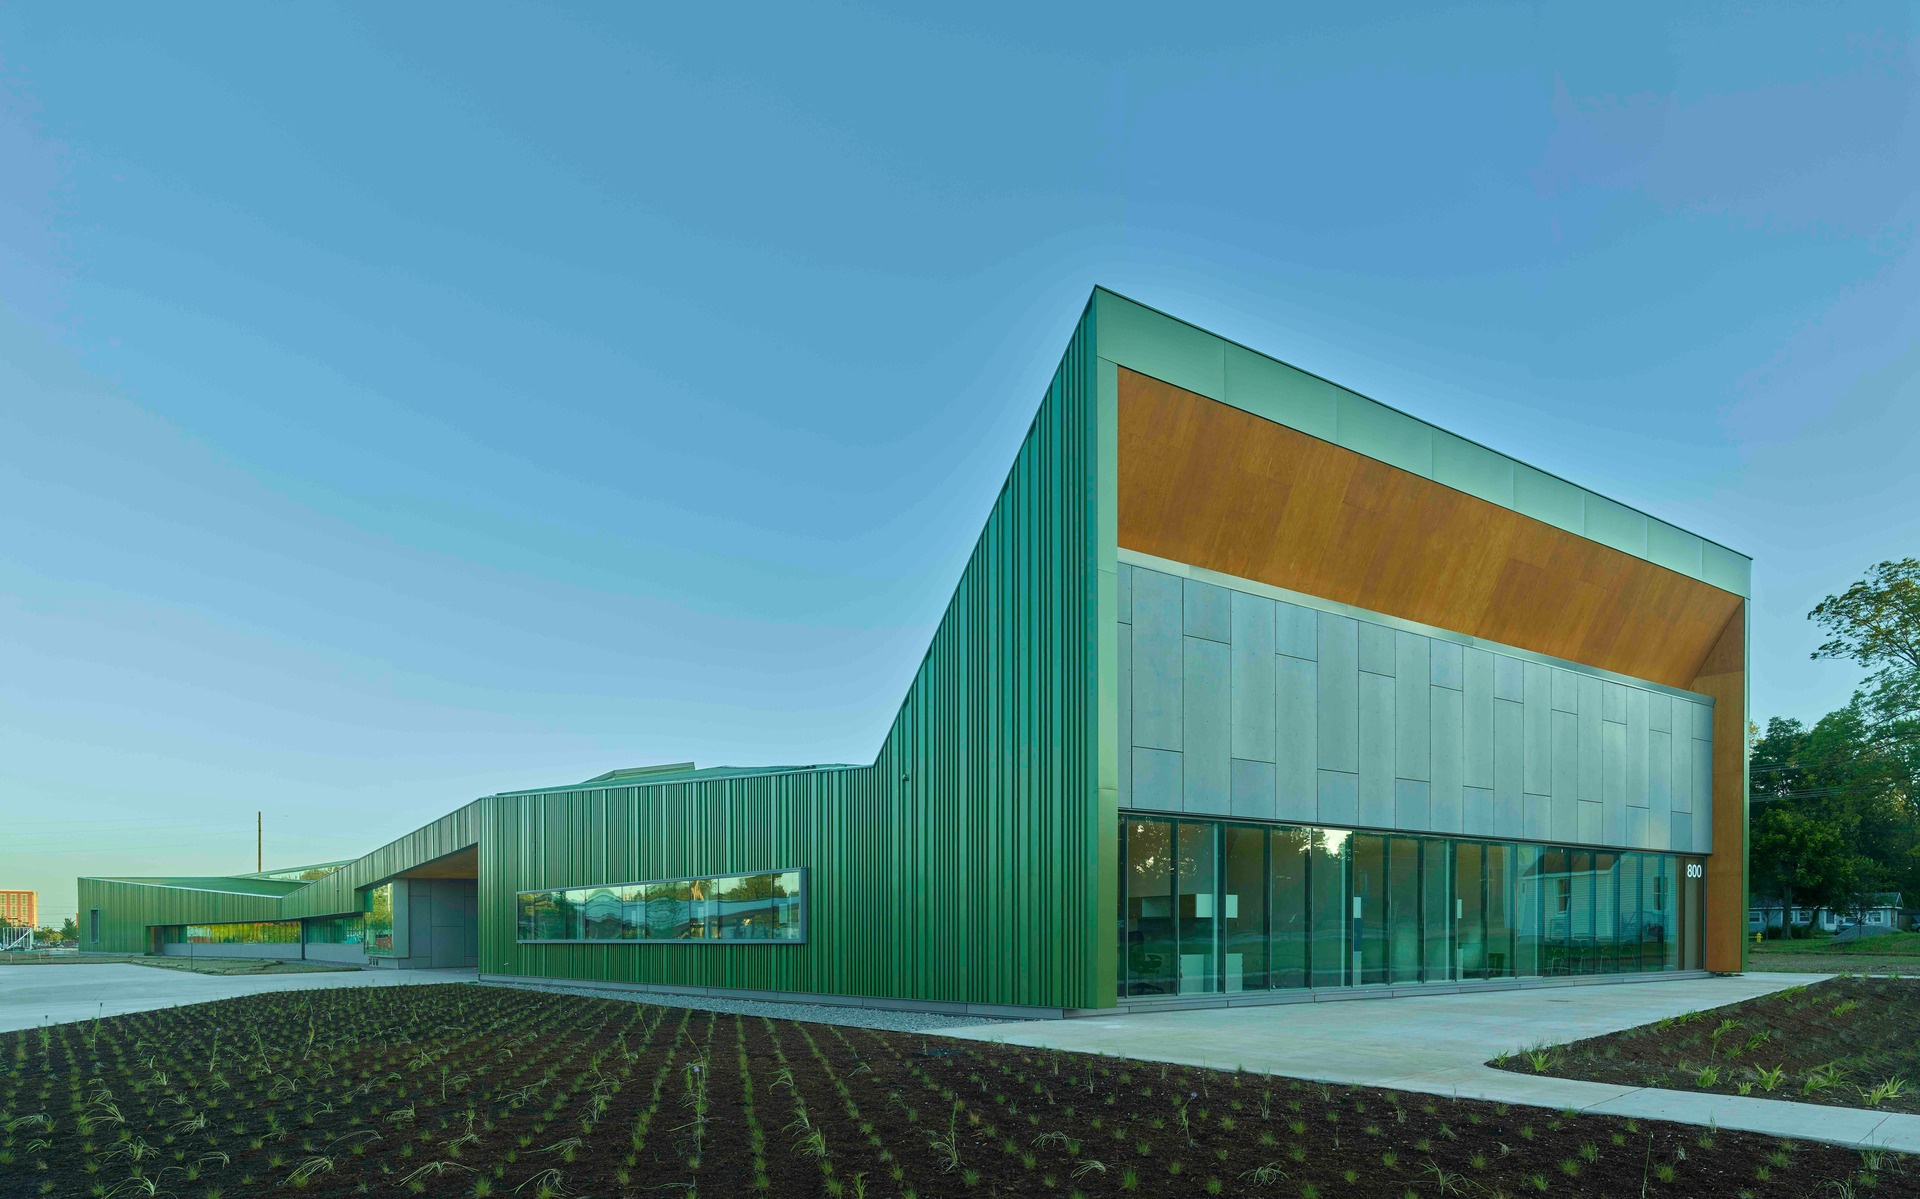 In Reels, a 37,970-square-foot building completed in 2019, narrative and visual communication come alive through the production of film and video. In Wheels, a 30,285-square-foot building completed in 2020, the fields of physics and mechanics are brought to life through the construction and use of bicycles and other wheeled machines.